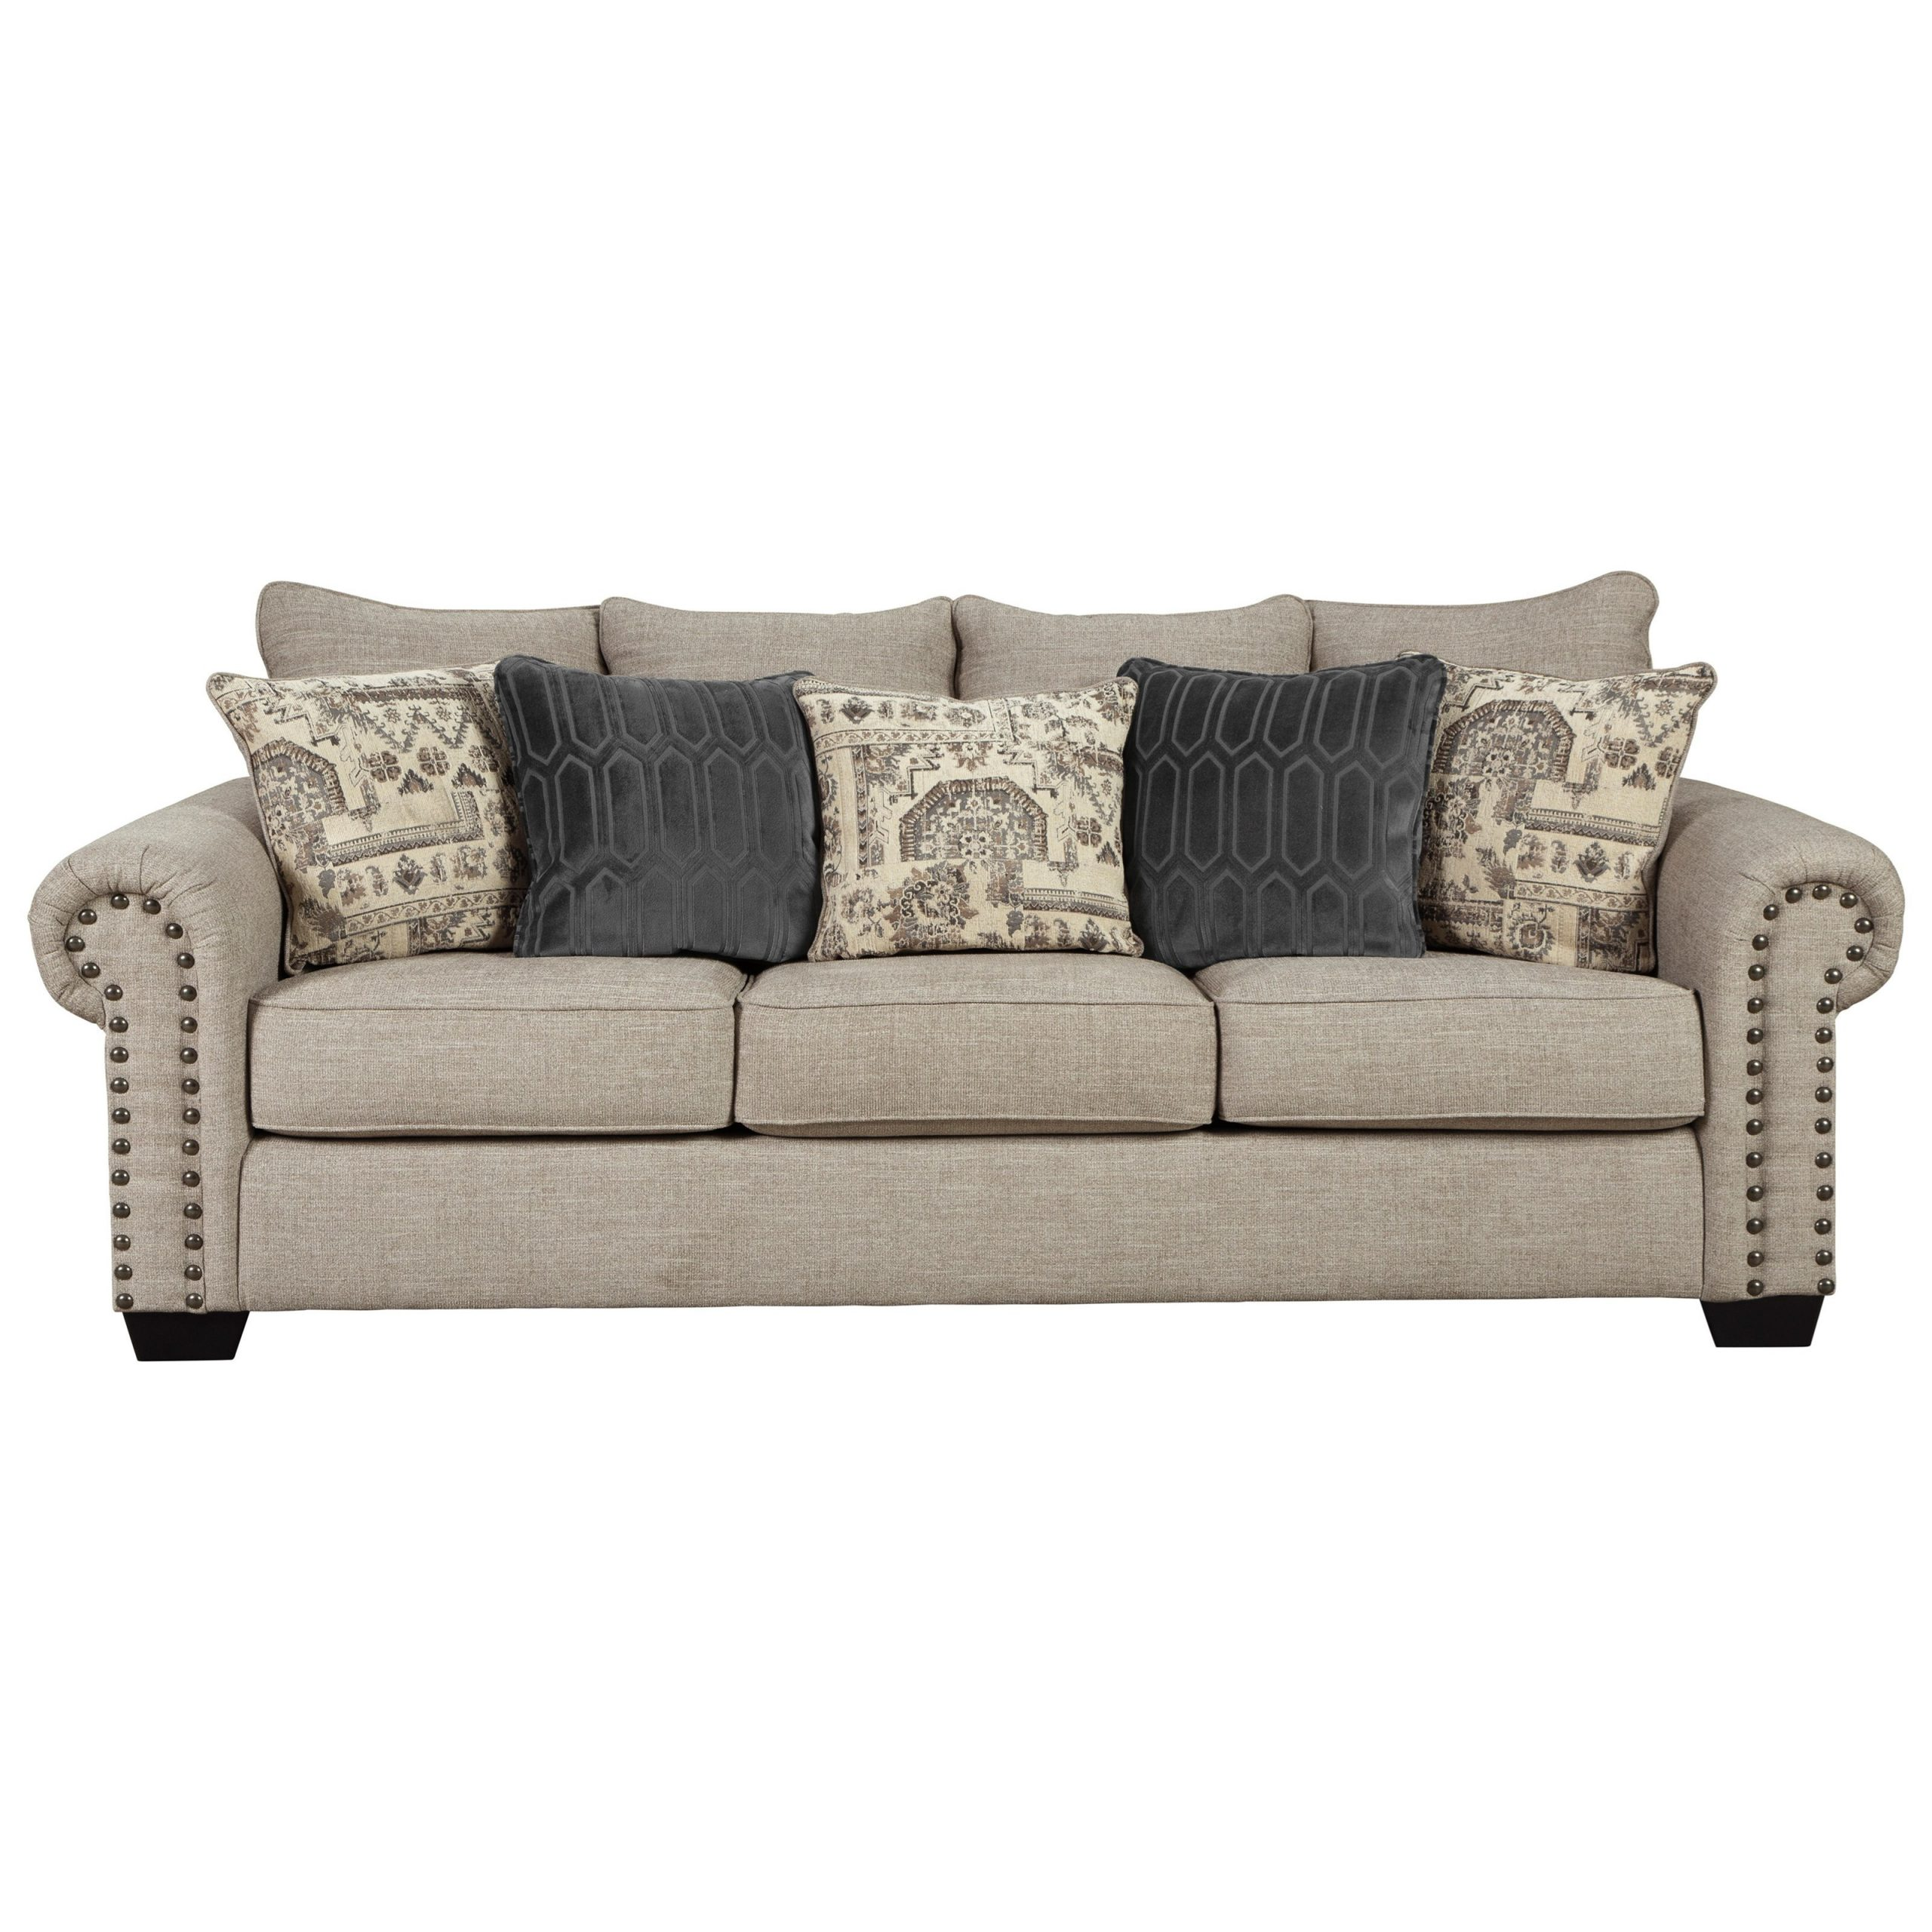 Signature Designashley Zarina 9770438 Transitional Intended For 2Pc Polyfiber Sectional Sofas With Nailhead Trims Gray (View 4 of 15)